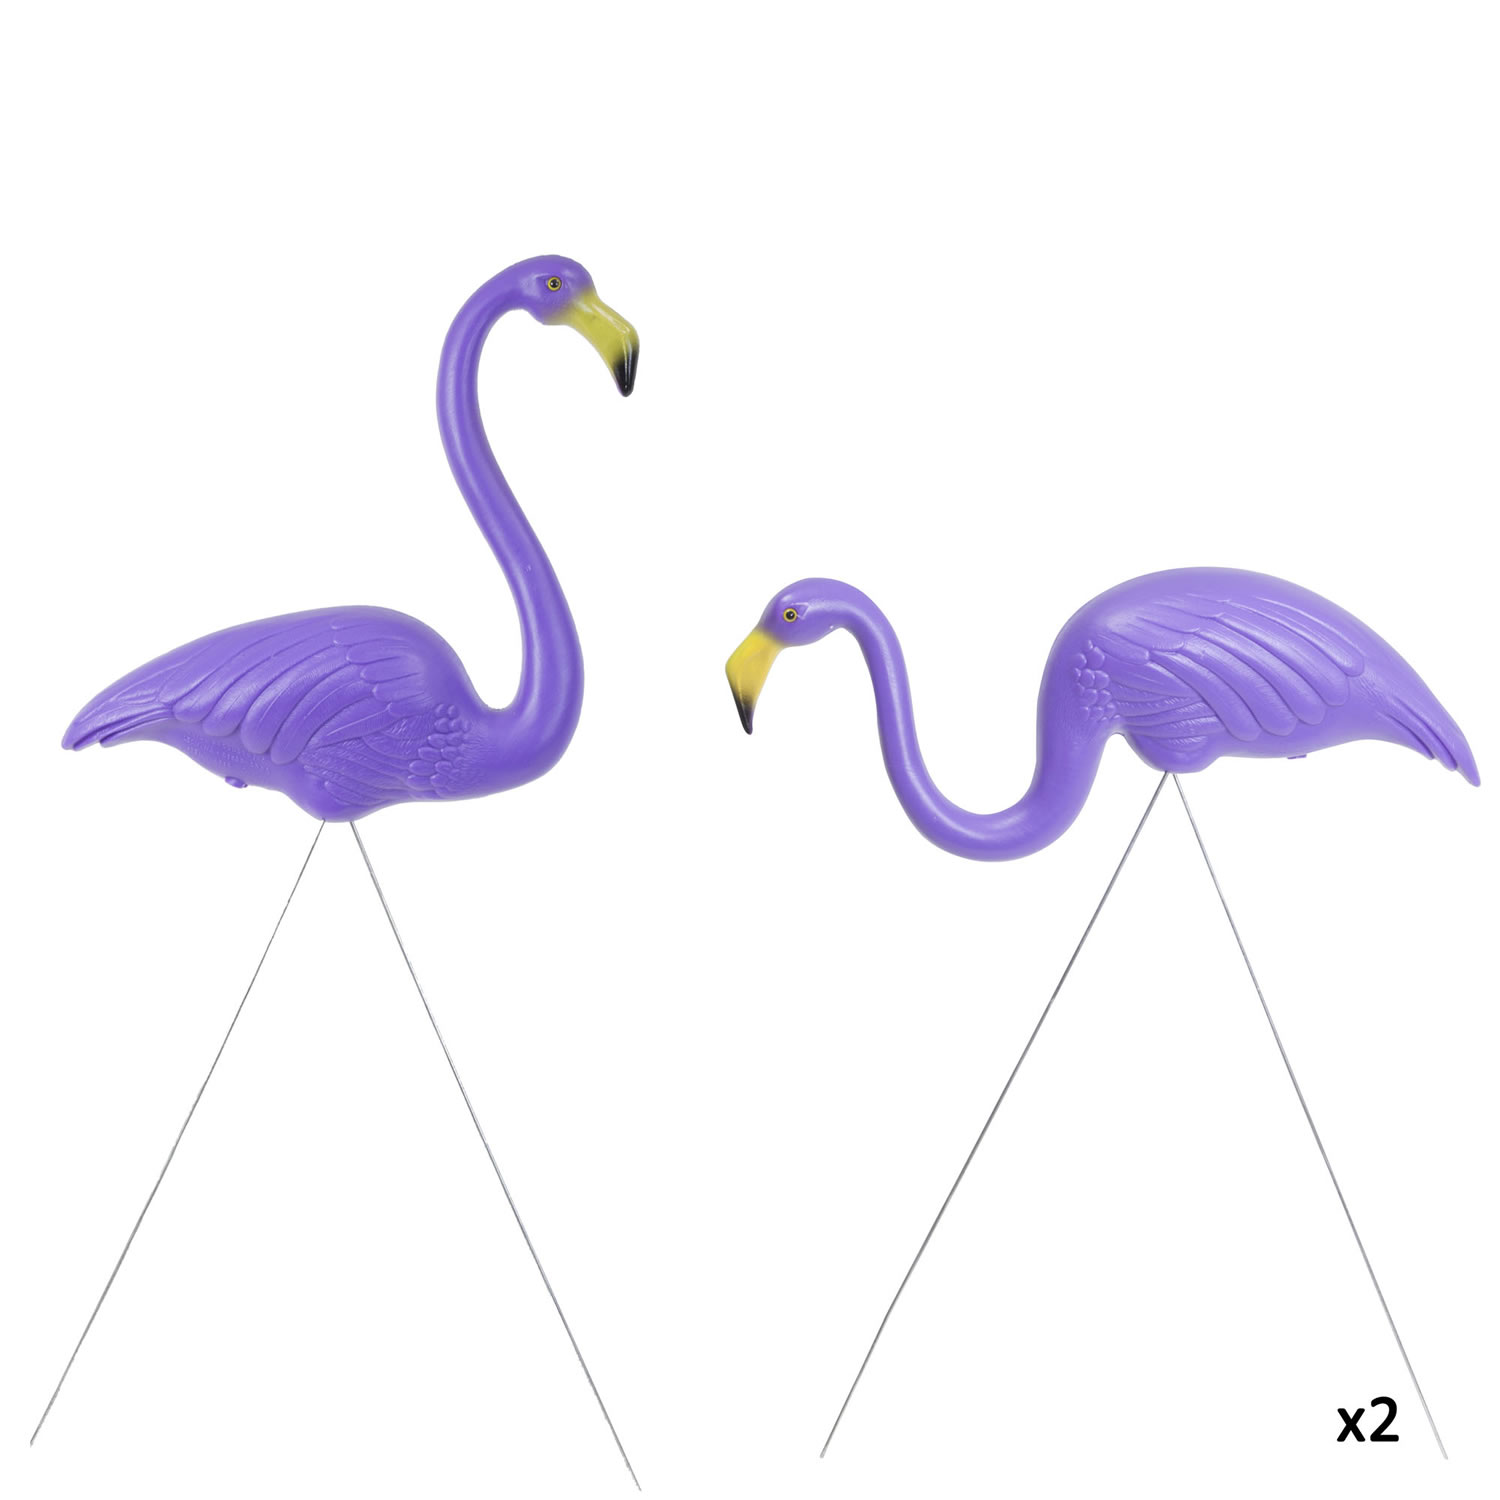 2 Pairs of Authentic Purple Plastic Lawn Flamingo Garden ...